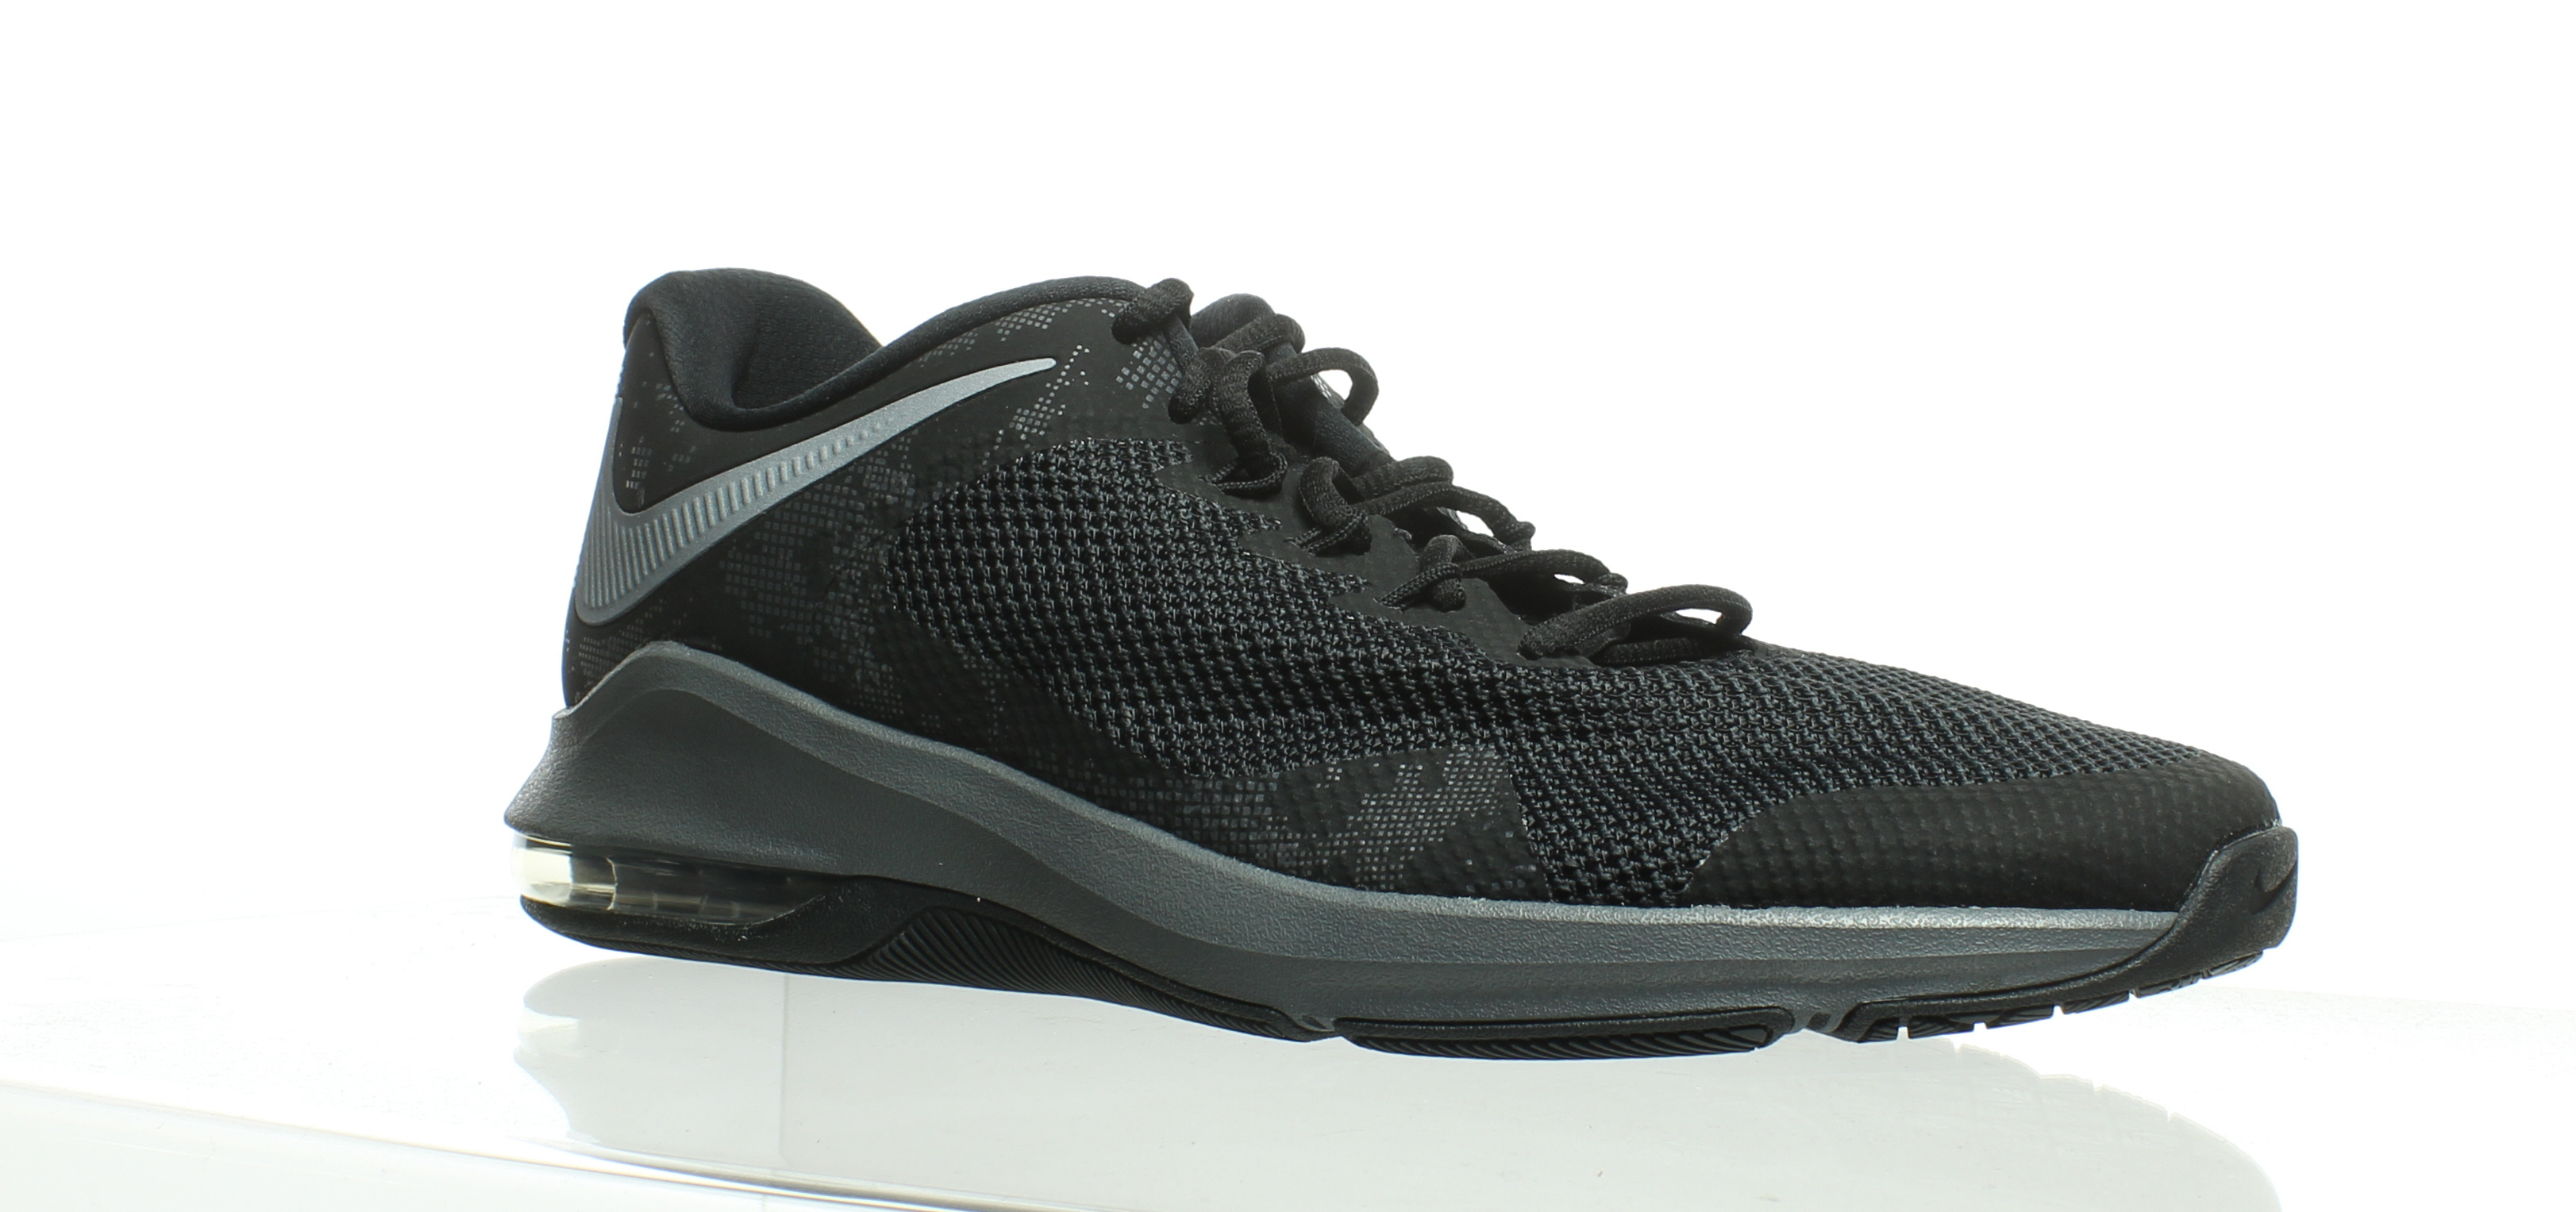 best website fb93f 4fcfe Details about Nike Womens Air Max Alpha Trainer Black Cross Training Shoes  Size 11 (232397)